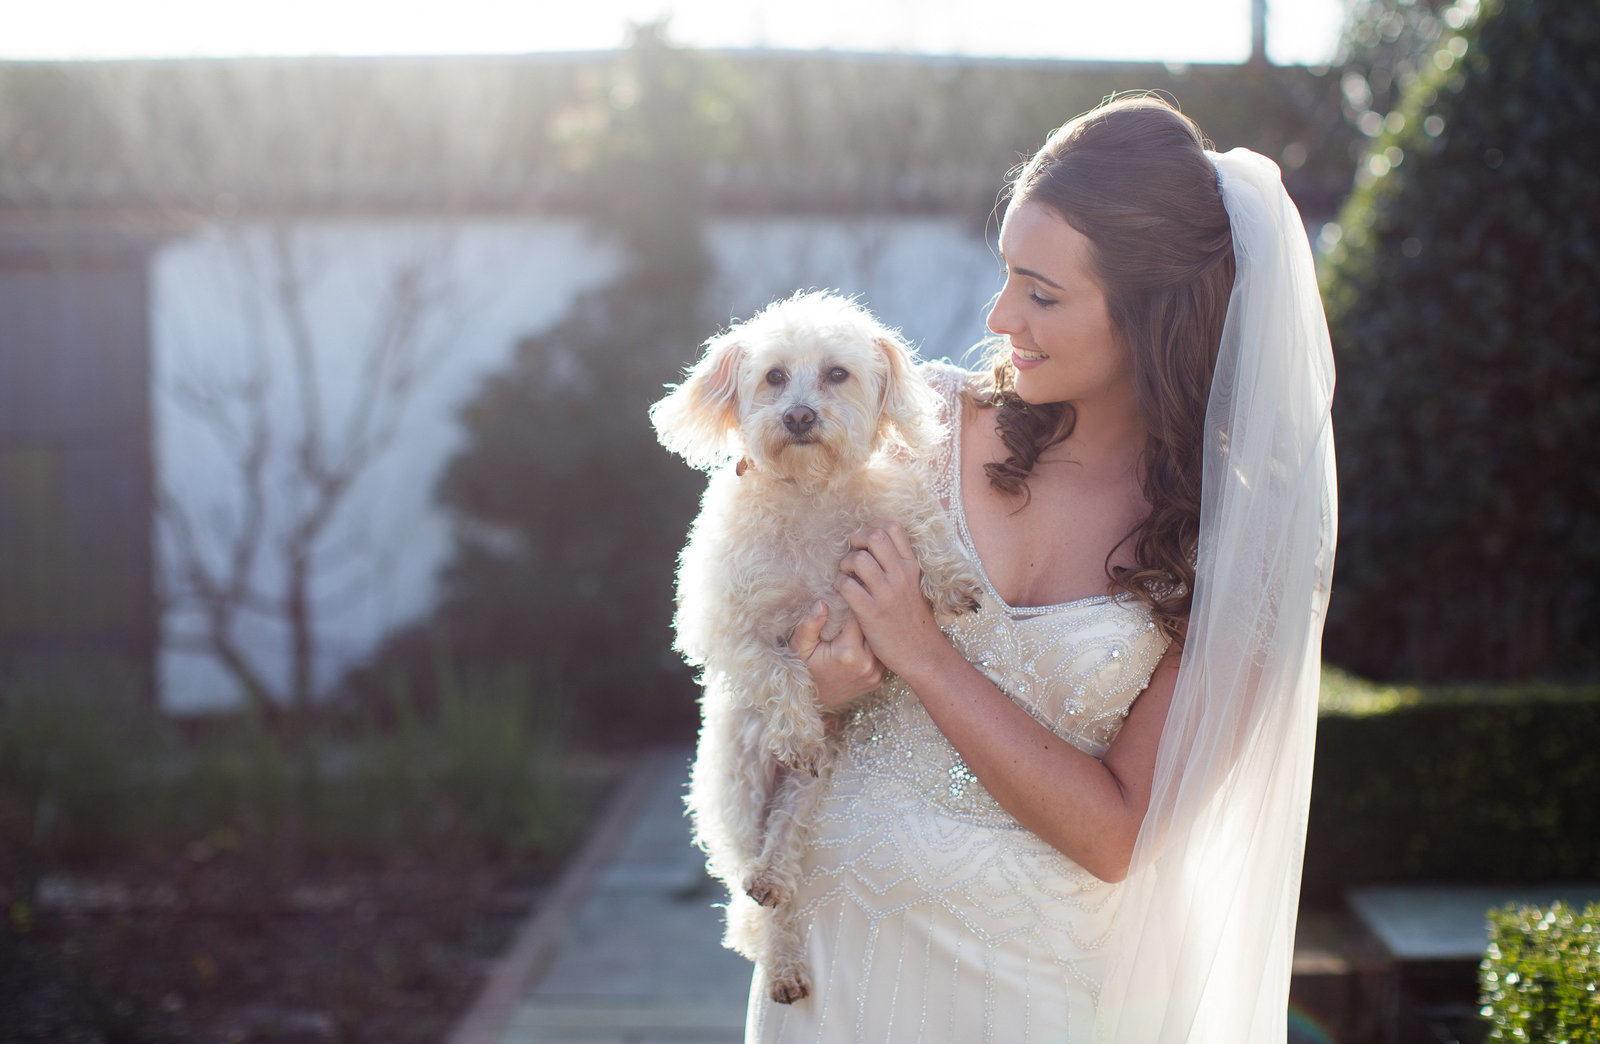 Bride holds her pet dog at her wedding at Southend Barns winter wedding, with low light and beautifully sunkissed in Jenny Packham dress